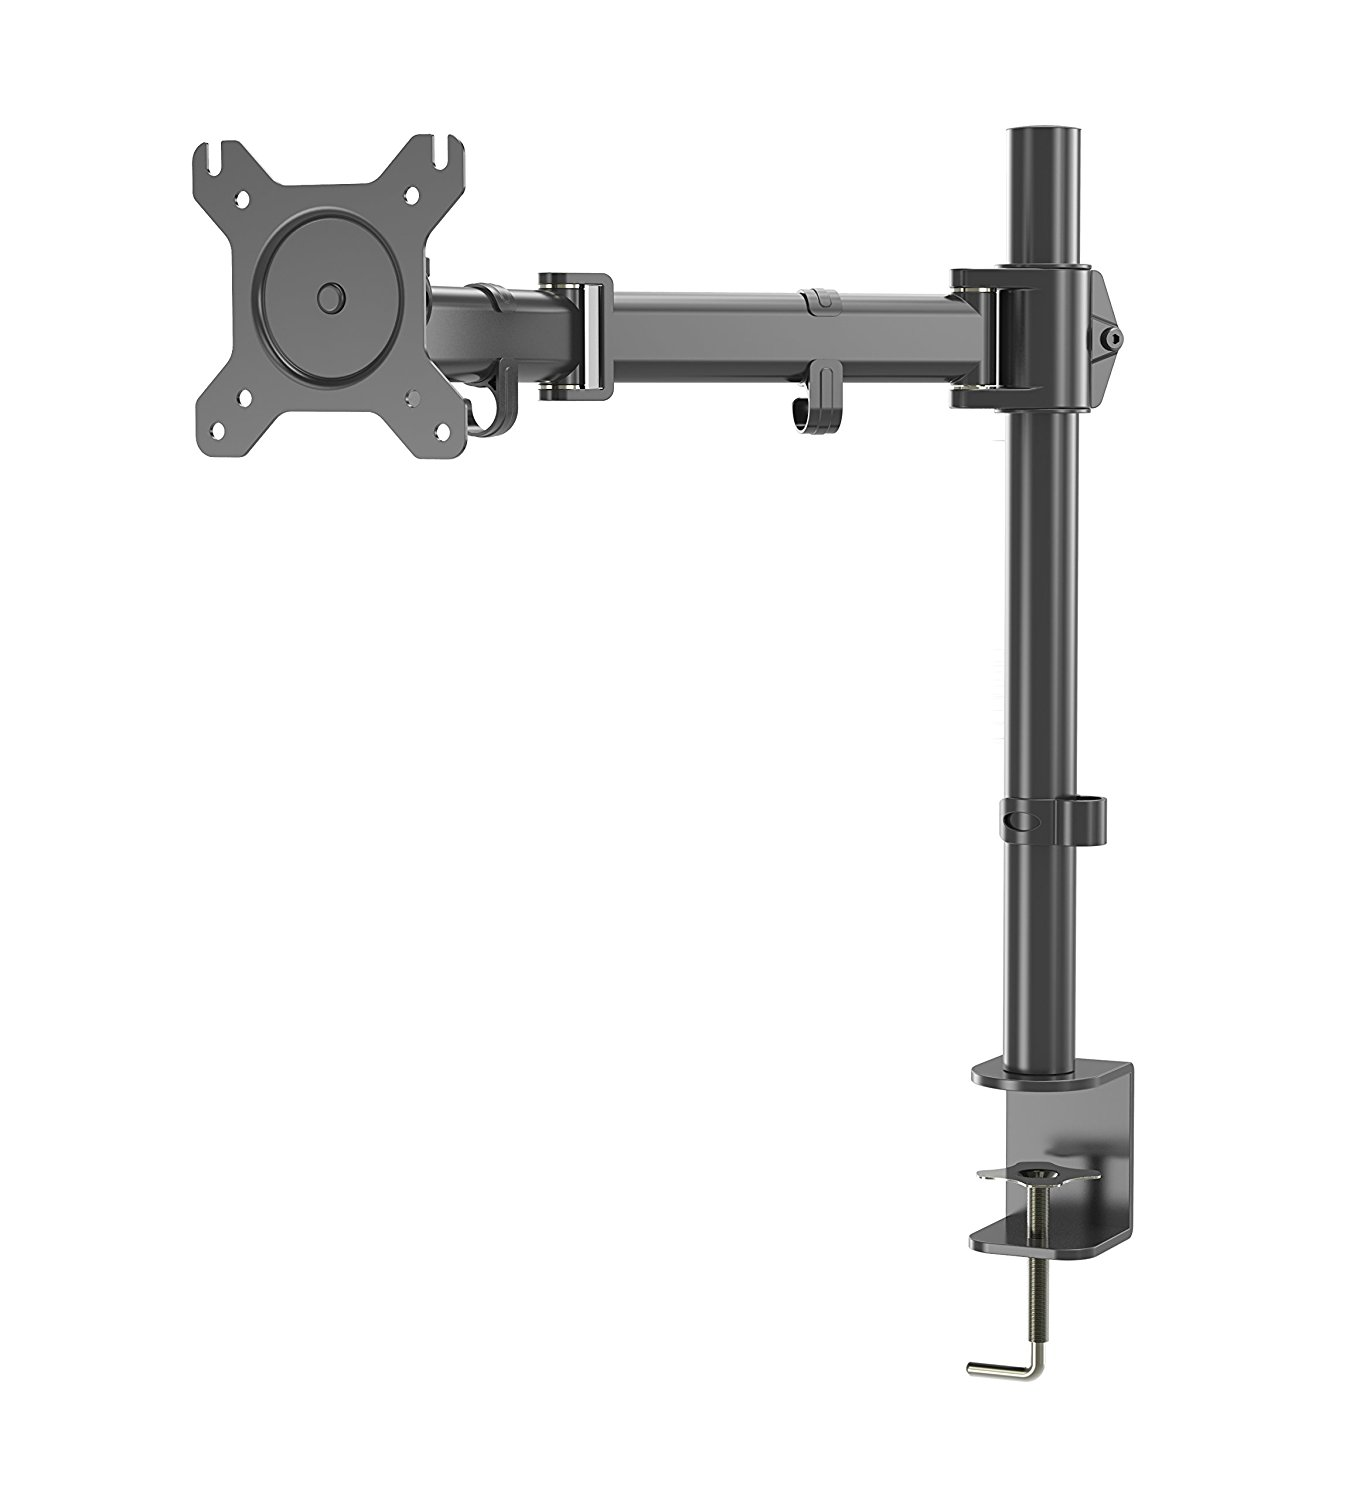 Buy Gibbon Mounts Dual Monitor Stand Articulating Gas